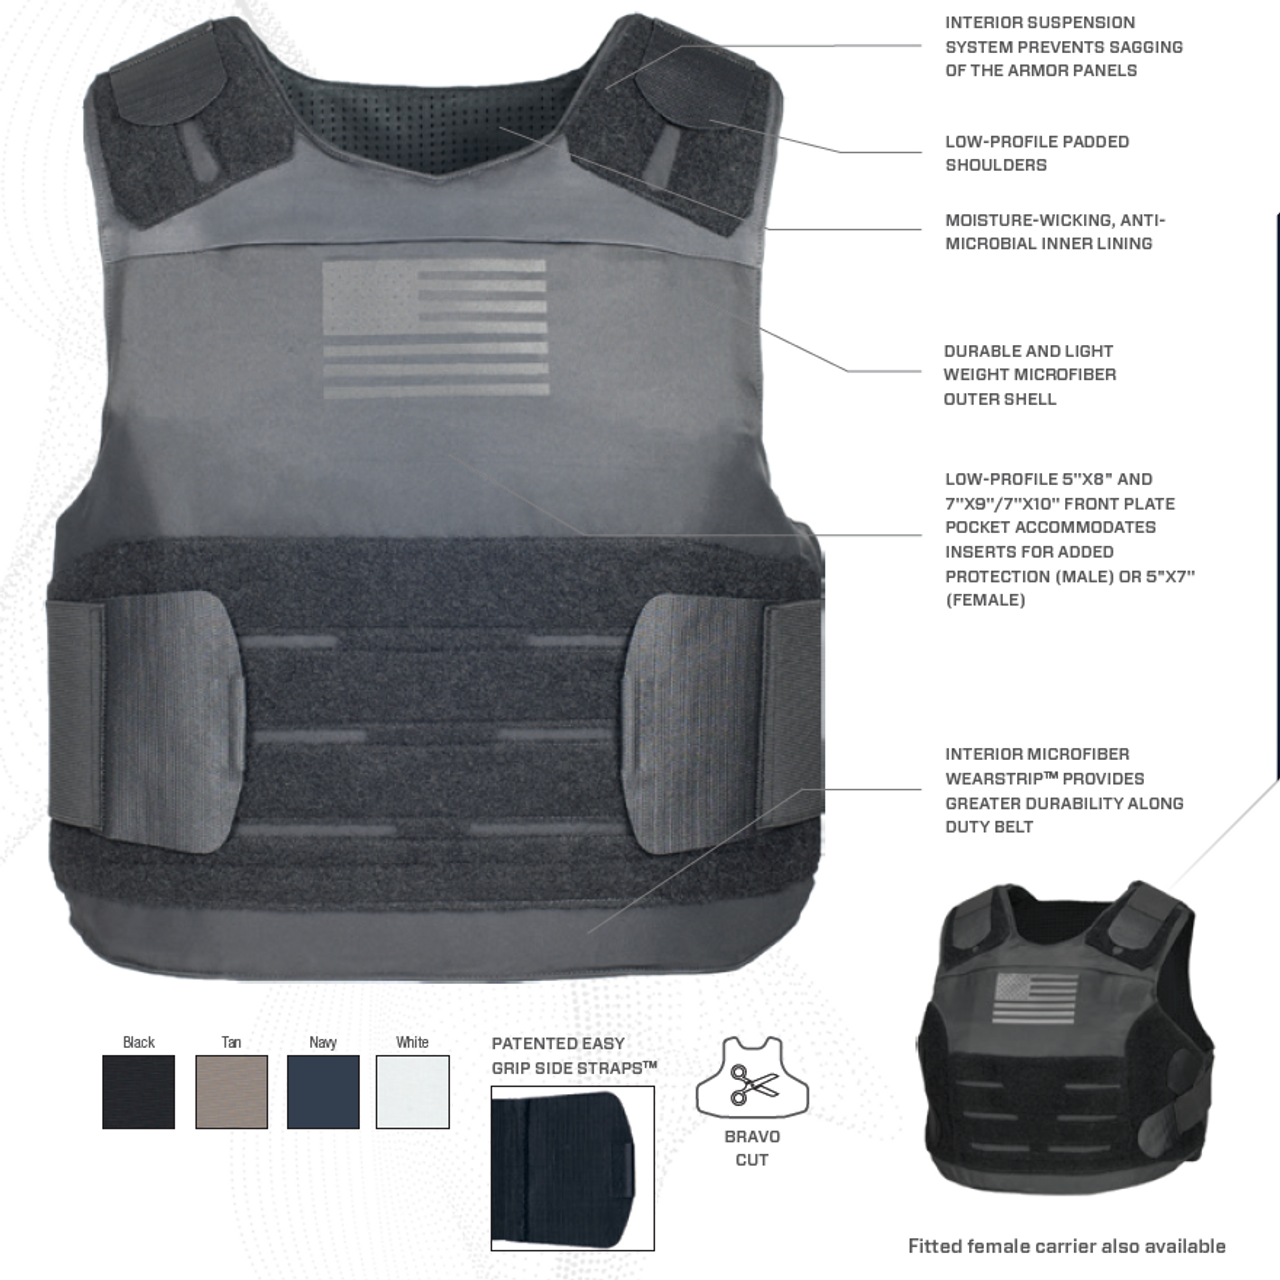 Armor Express ® American Revolution Men's Concealable Ballistic Body Armor  Carrier, Choose Carrier only or Carrier and Plates, NIJ Certified - Level